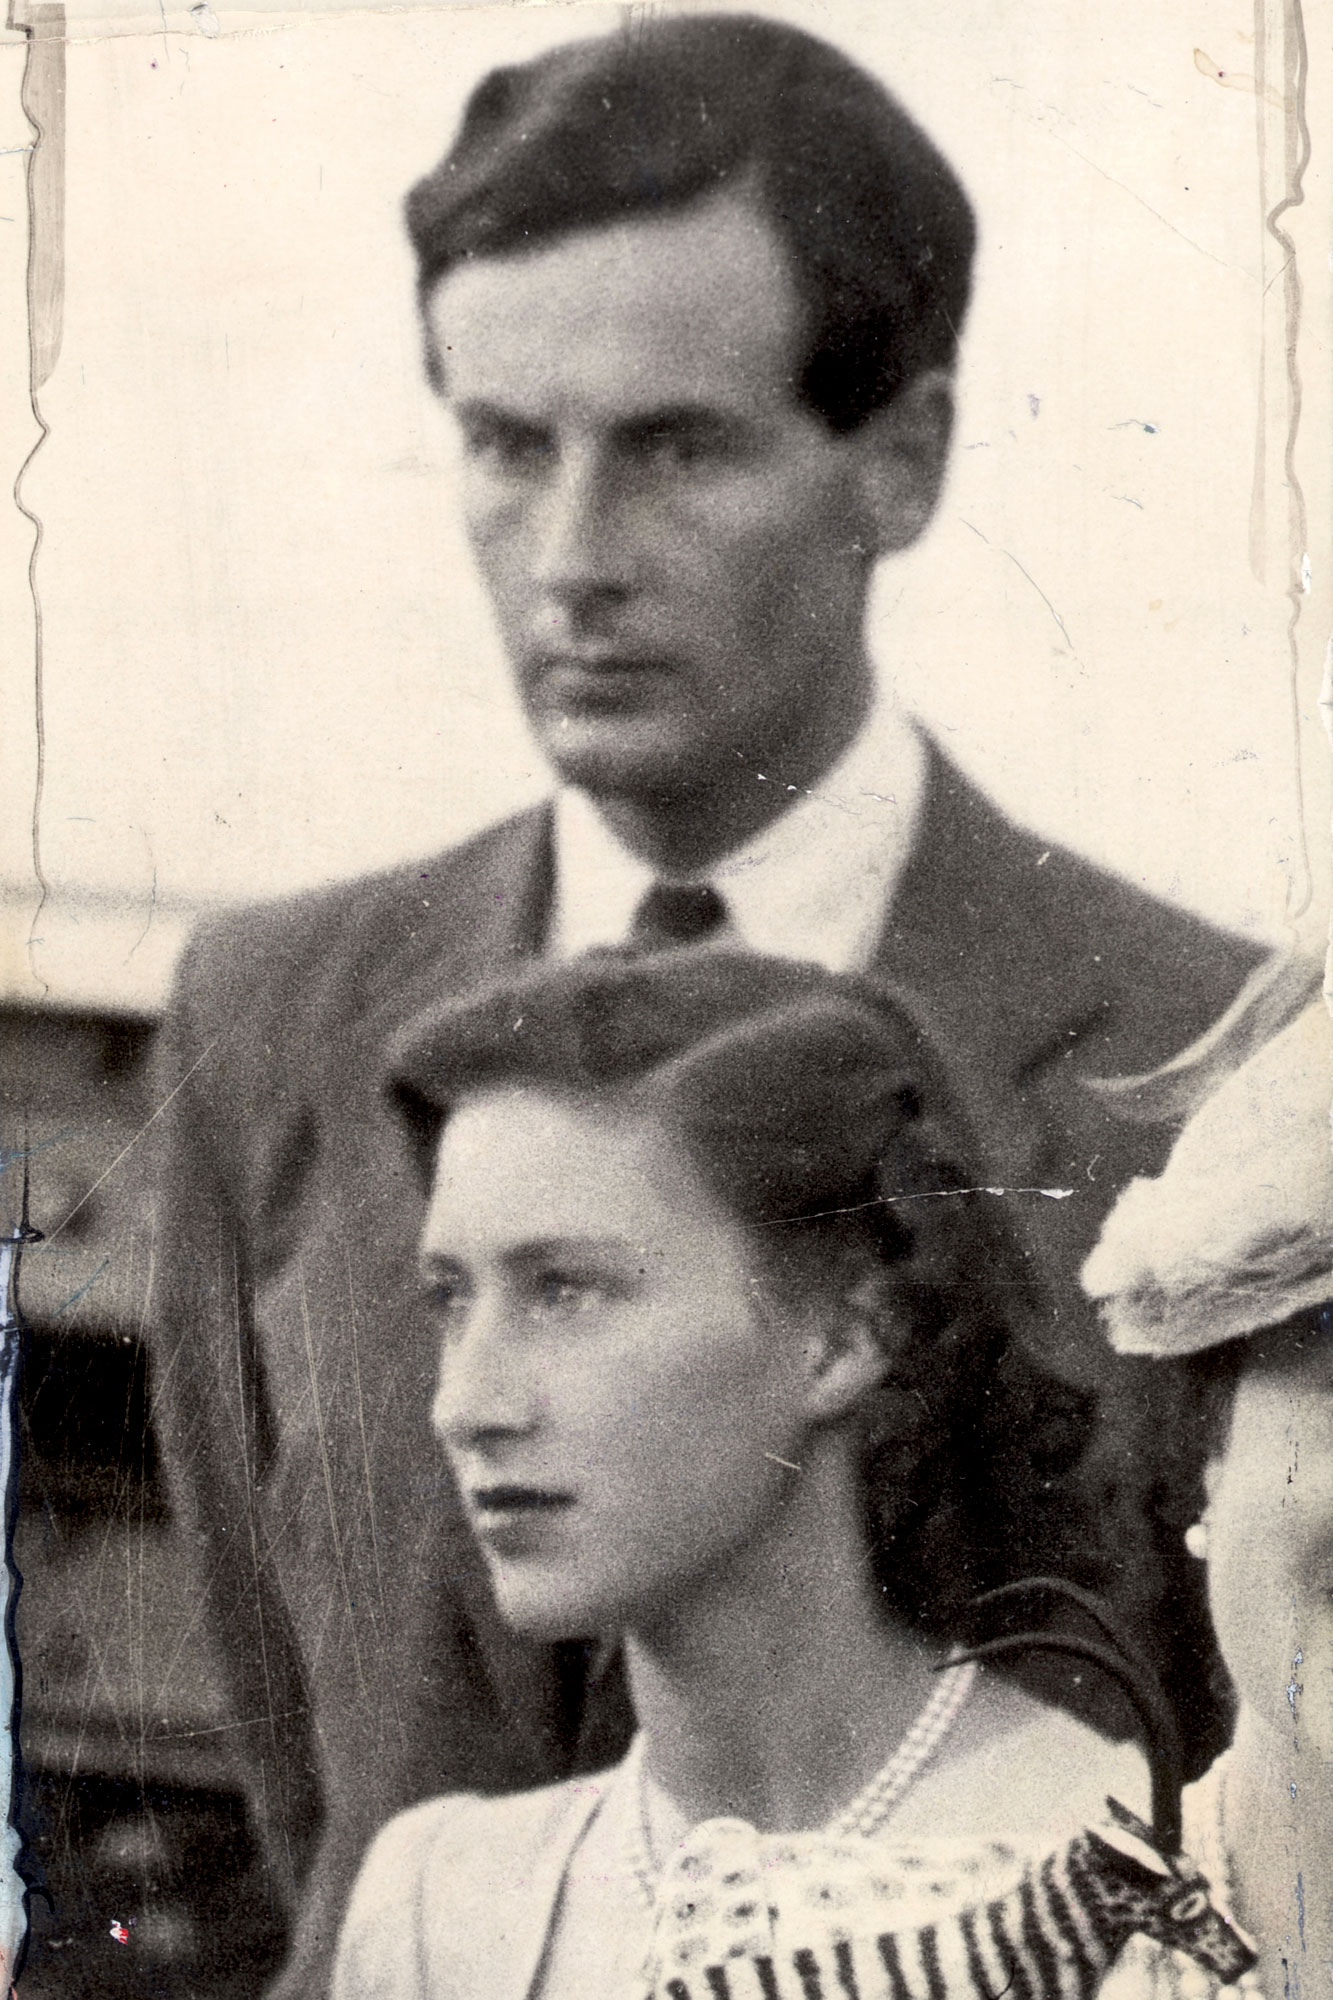 Princess Margaret and Peter Townsend May Have Had Adjoining Bedrooms When She Was Just 17